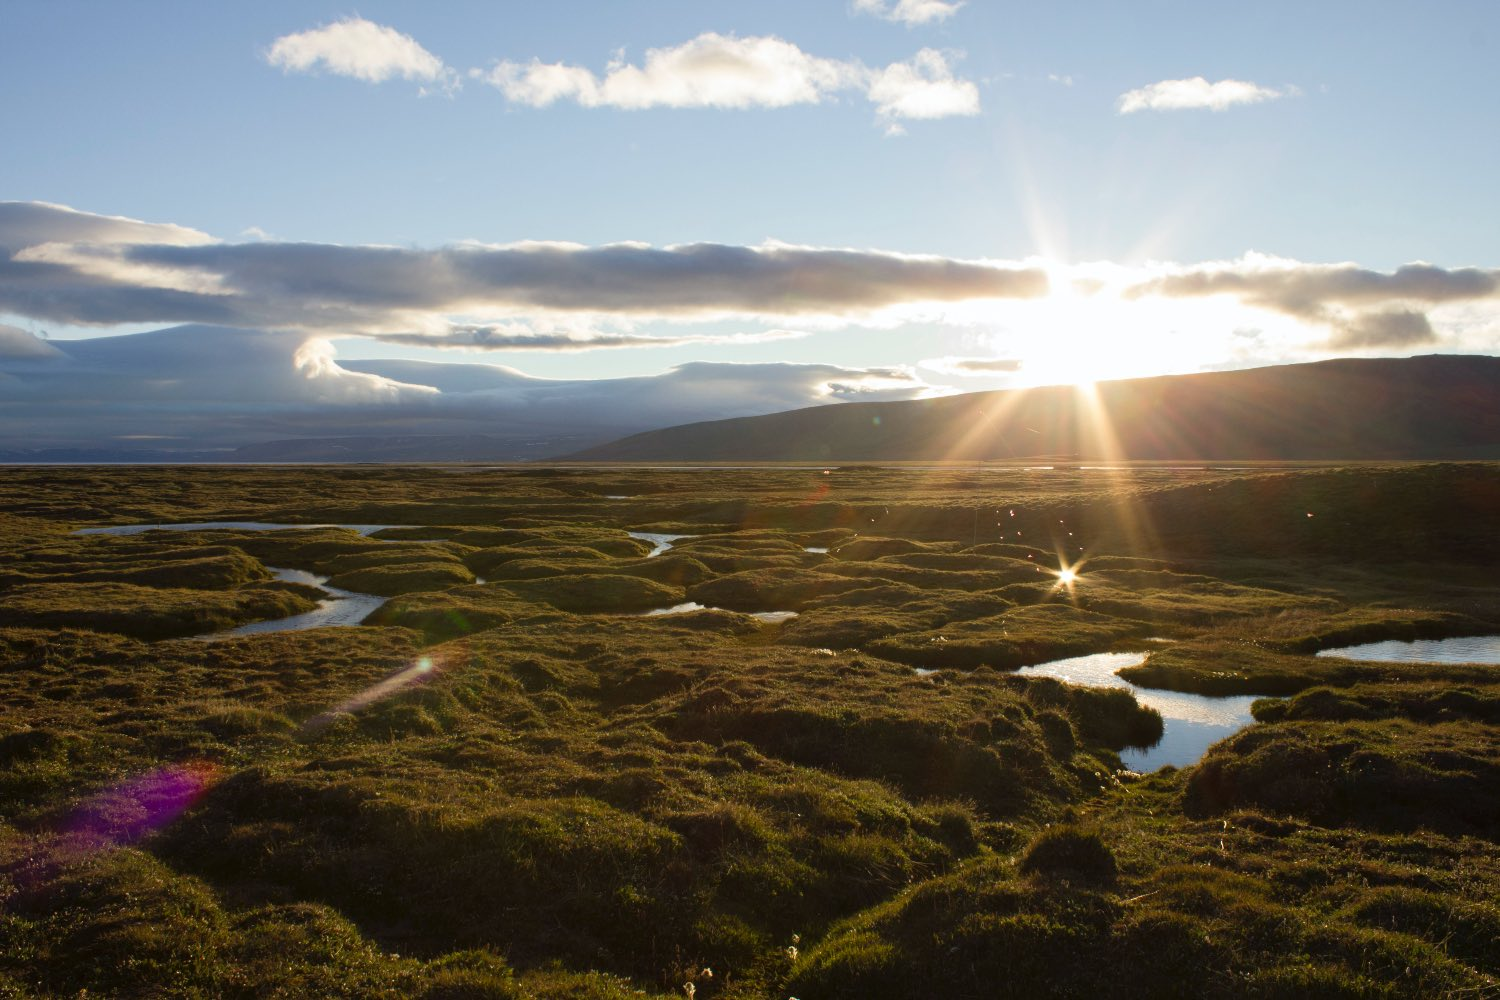 summer landscape of bylot island - sun, grass and meandering creeks